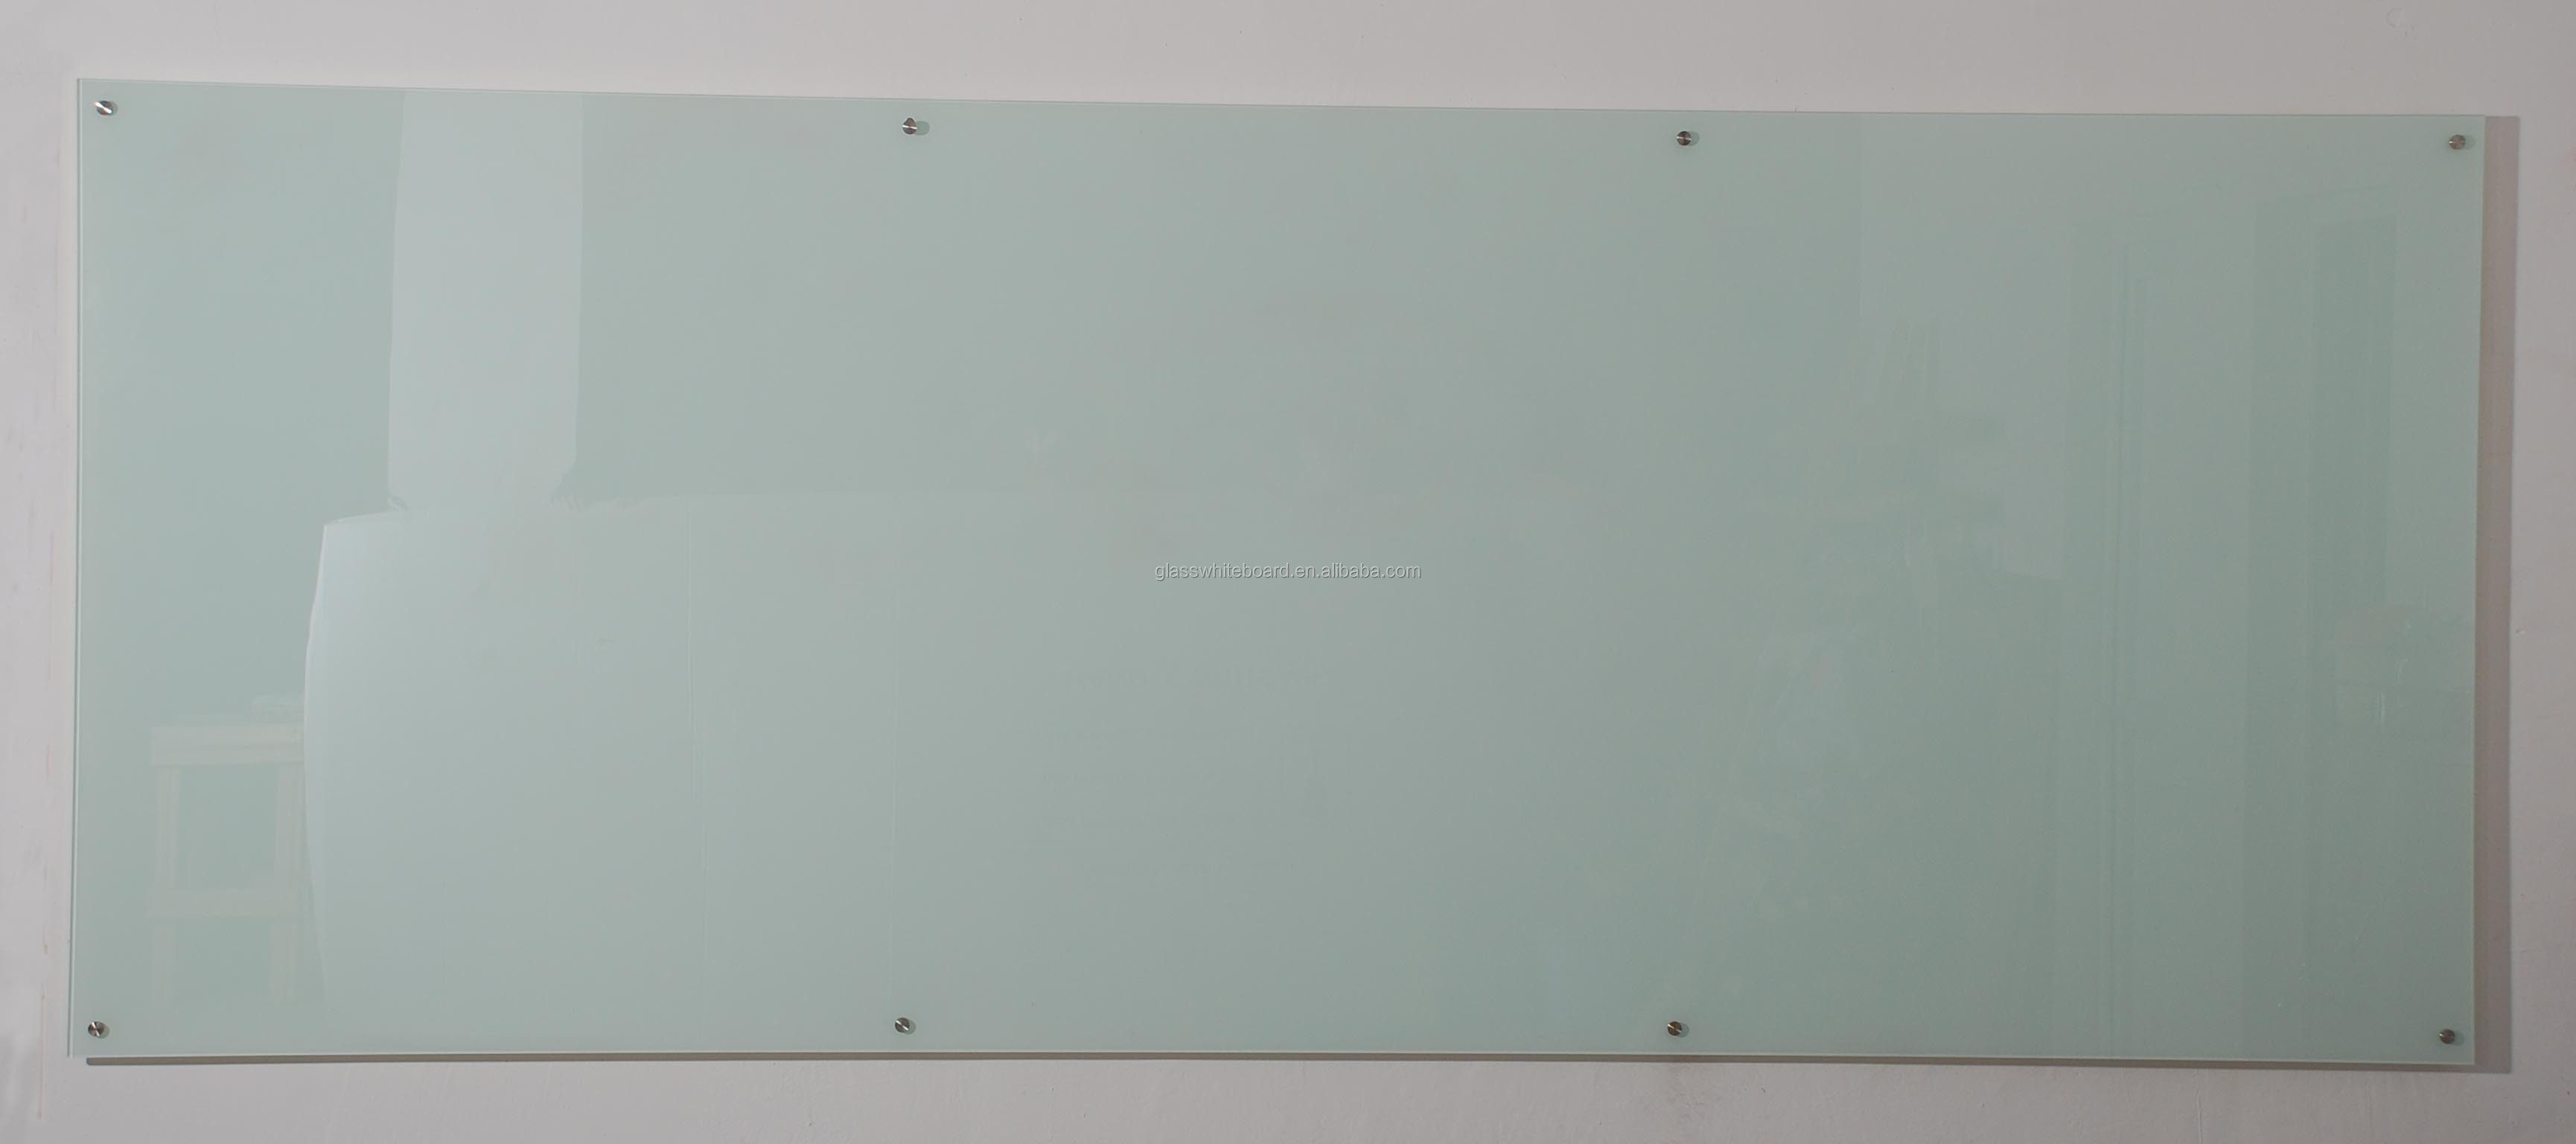 Custom Made 4mm Thickness Magnetic Glass Board - Buy Glass ...